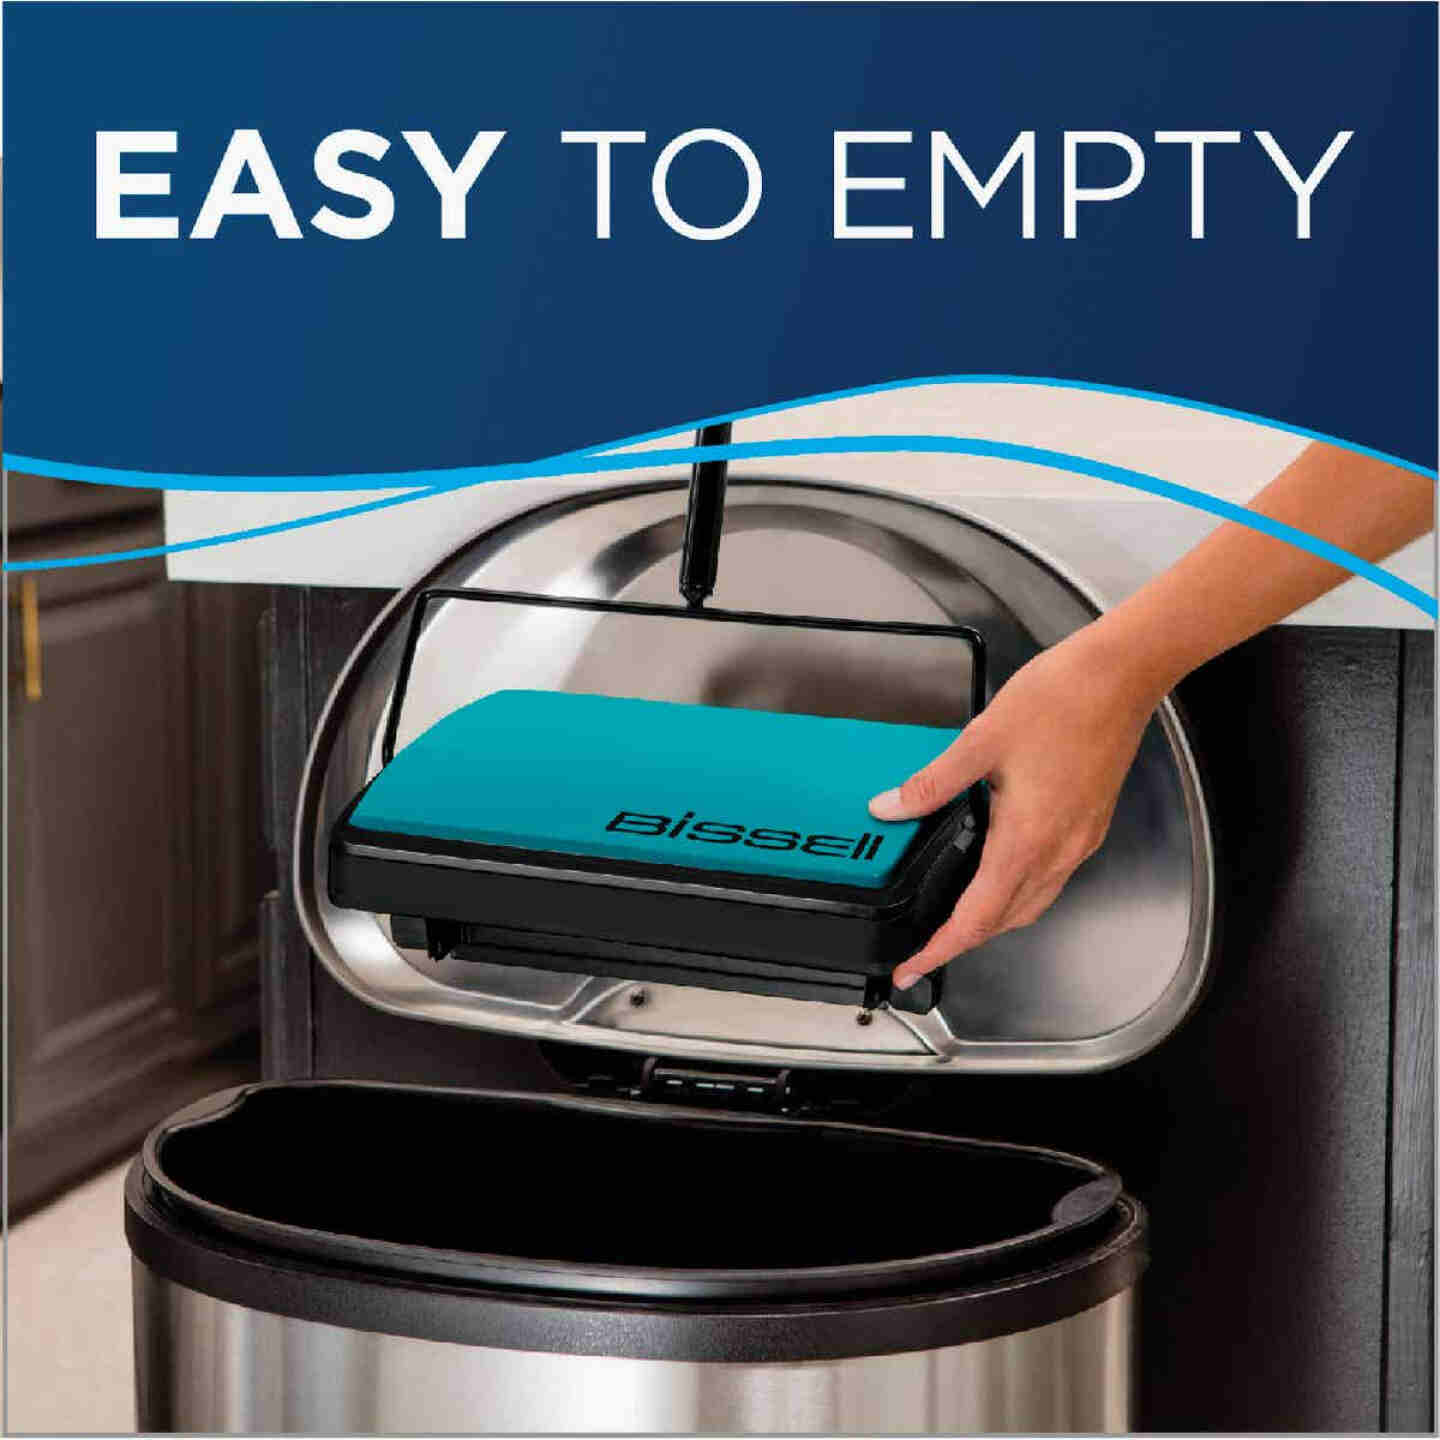 Bissell EasySweep Compact Manual Sweeper Image 4